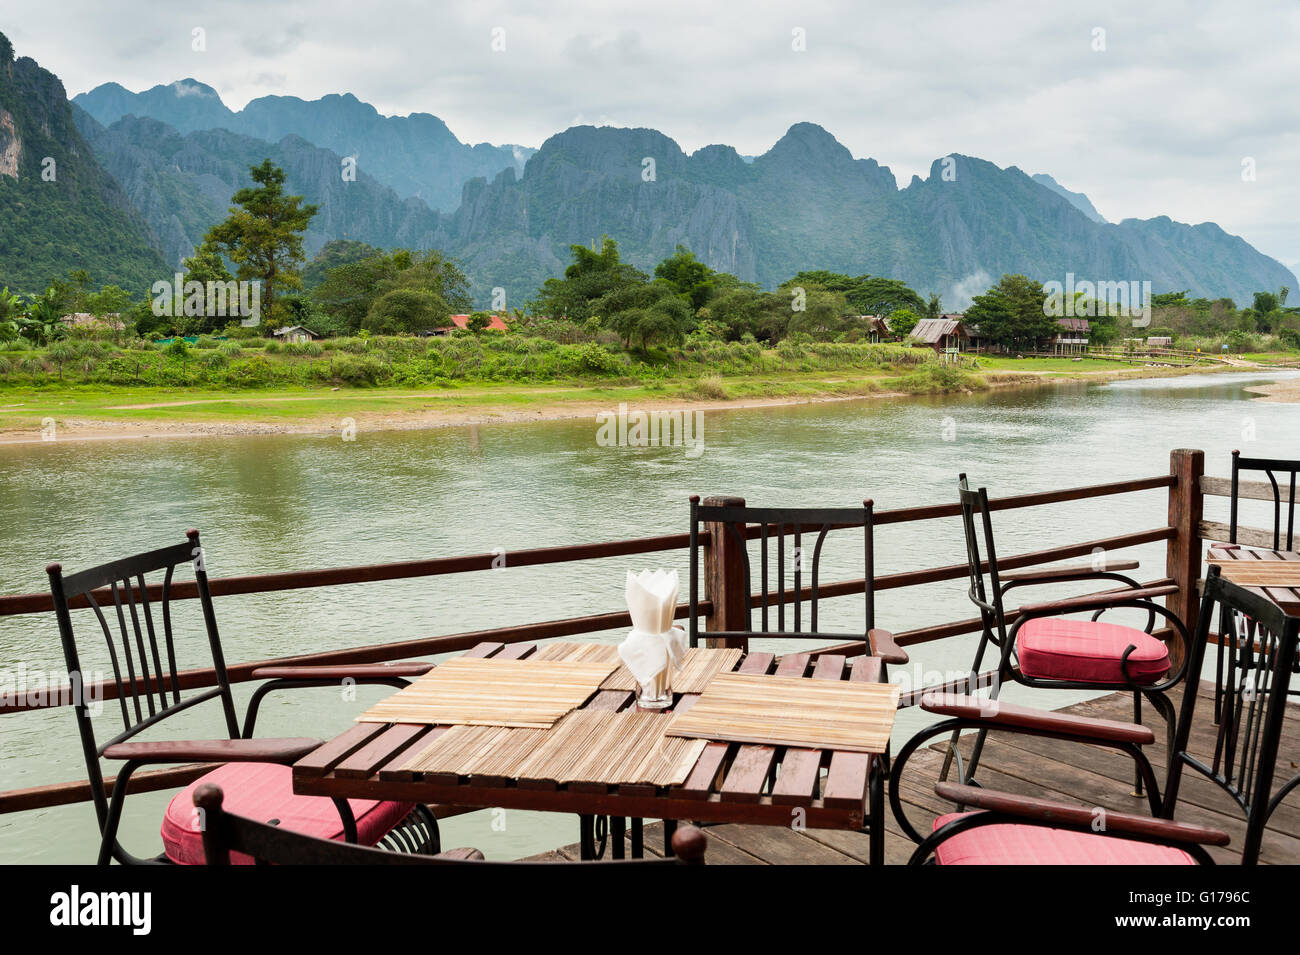 view of Nam Song River with Dining Table at Vang Vieng, Laos - Stock Image